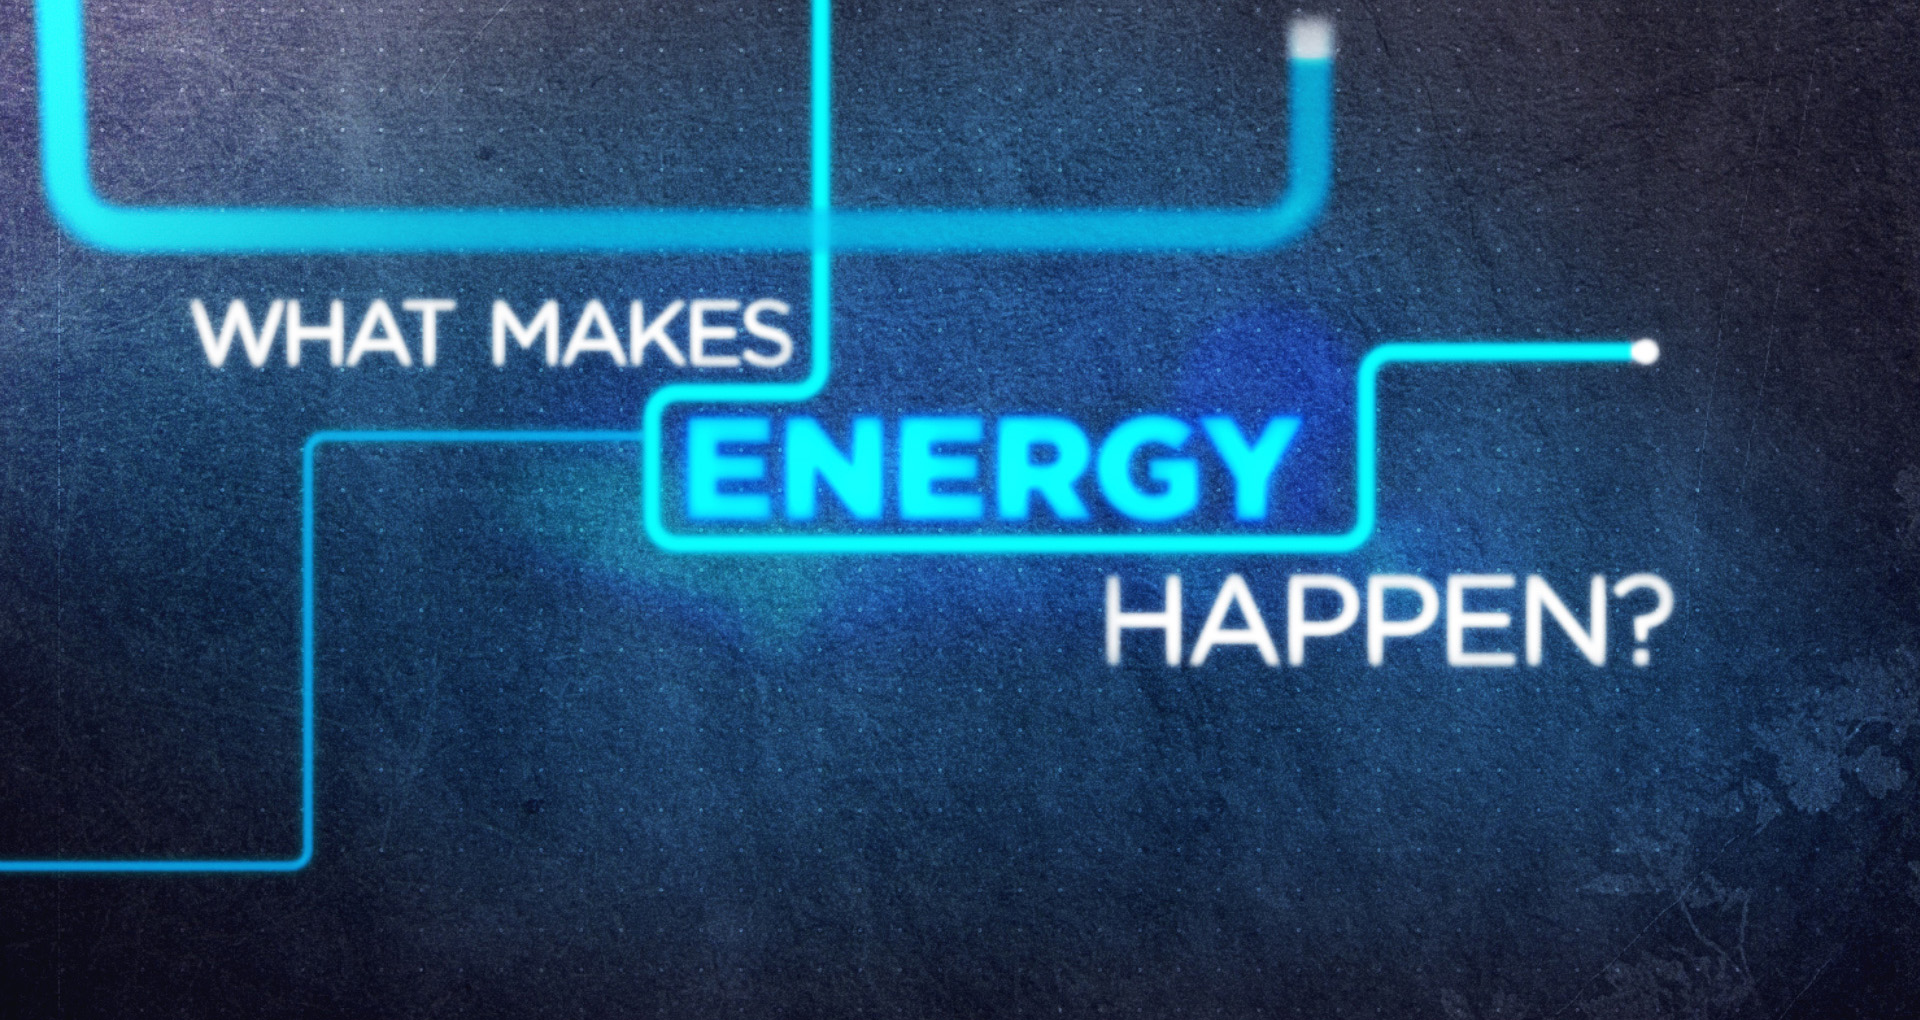 What Makes Energy Happen?